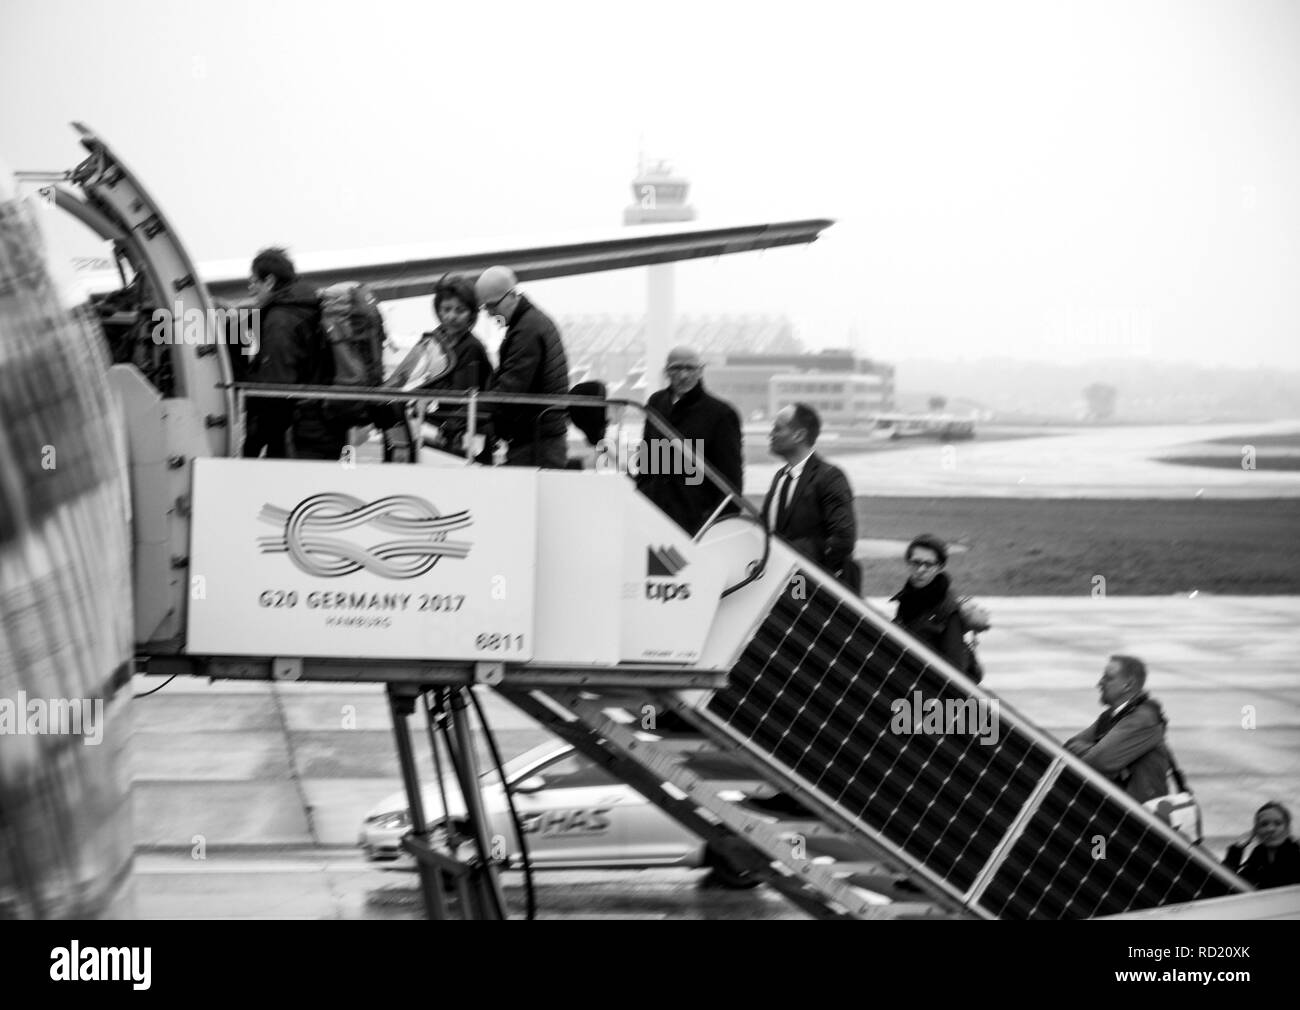 HAMBURG, GERMANY - MAR 22, 2018: Defocused black and white of people entering EasyJet airplane early in the morning in Flughafen Hamburg through rear passenger door jetway stairs - Stock Image